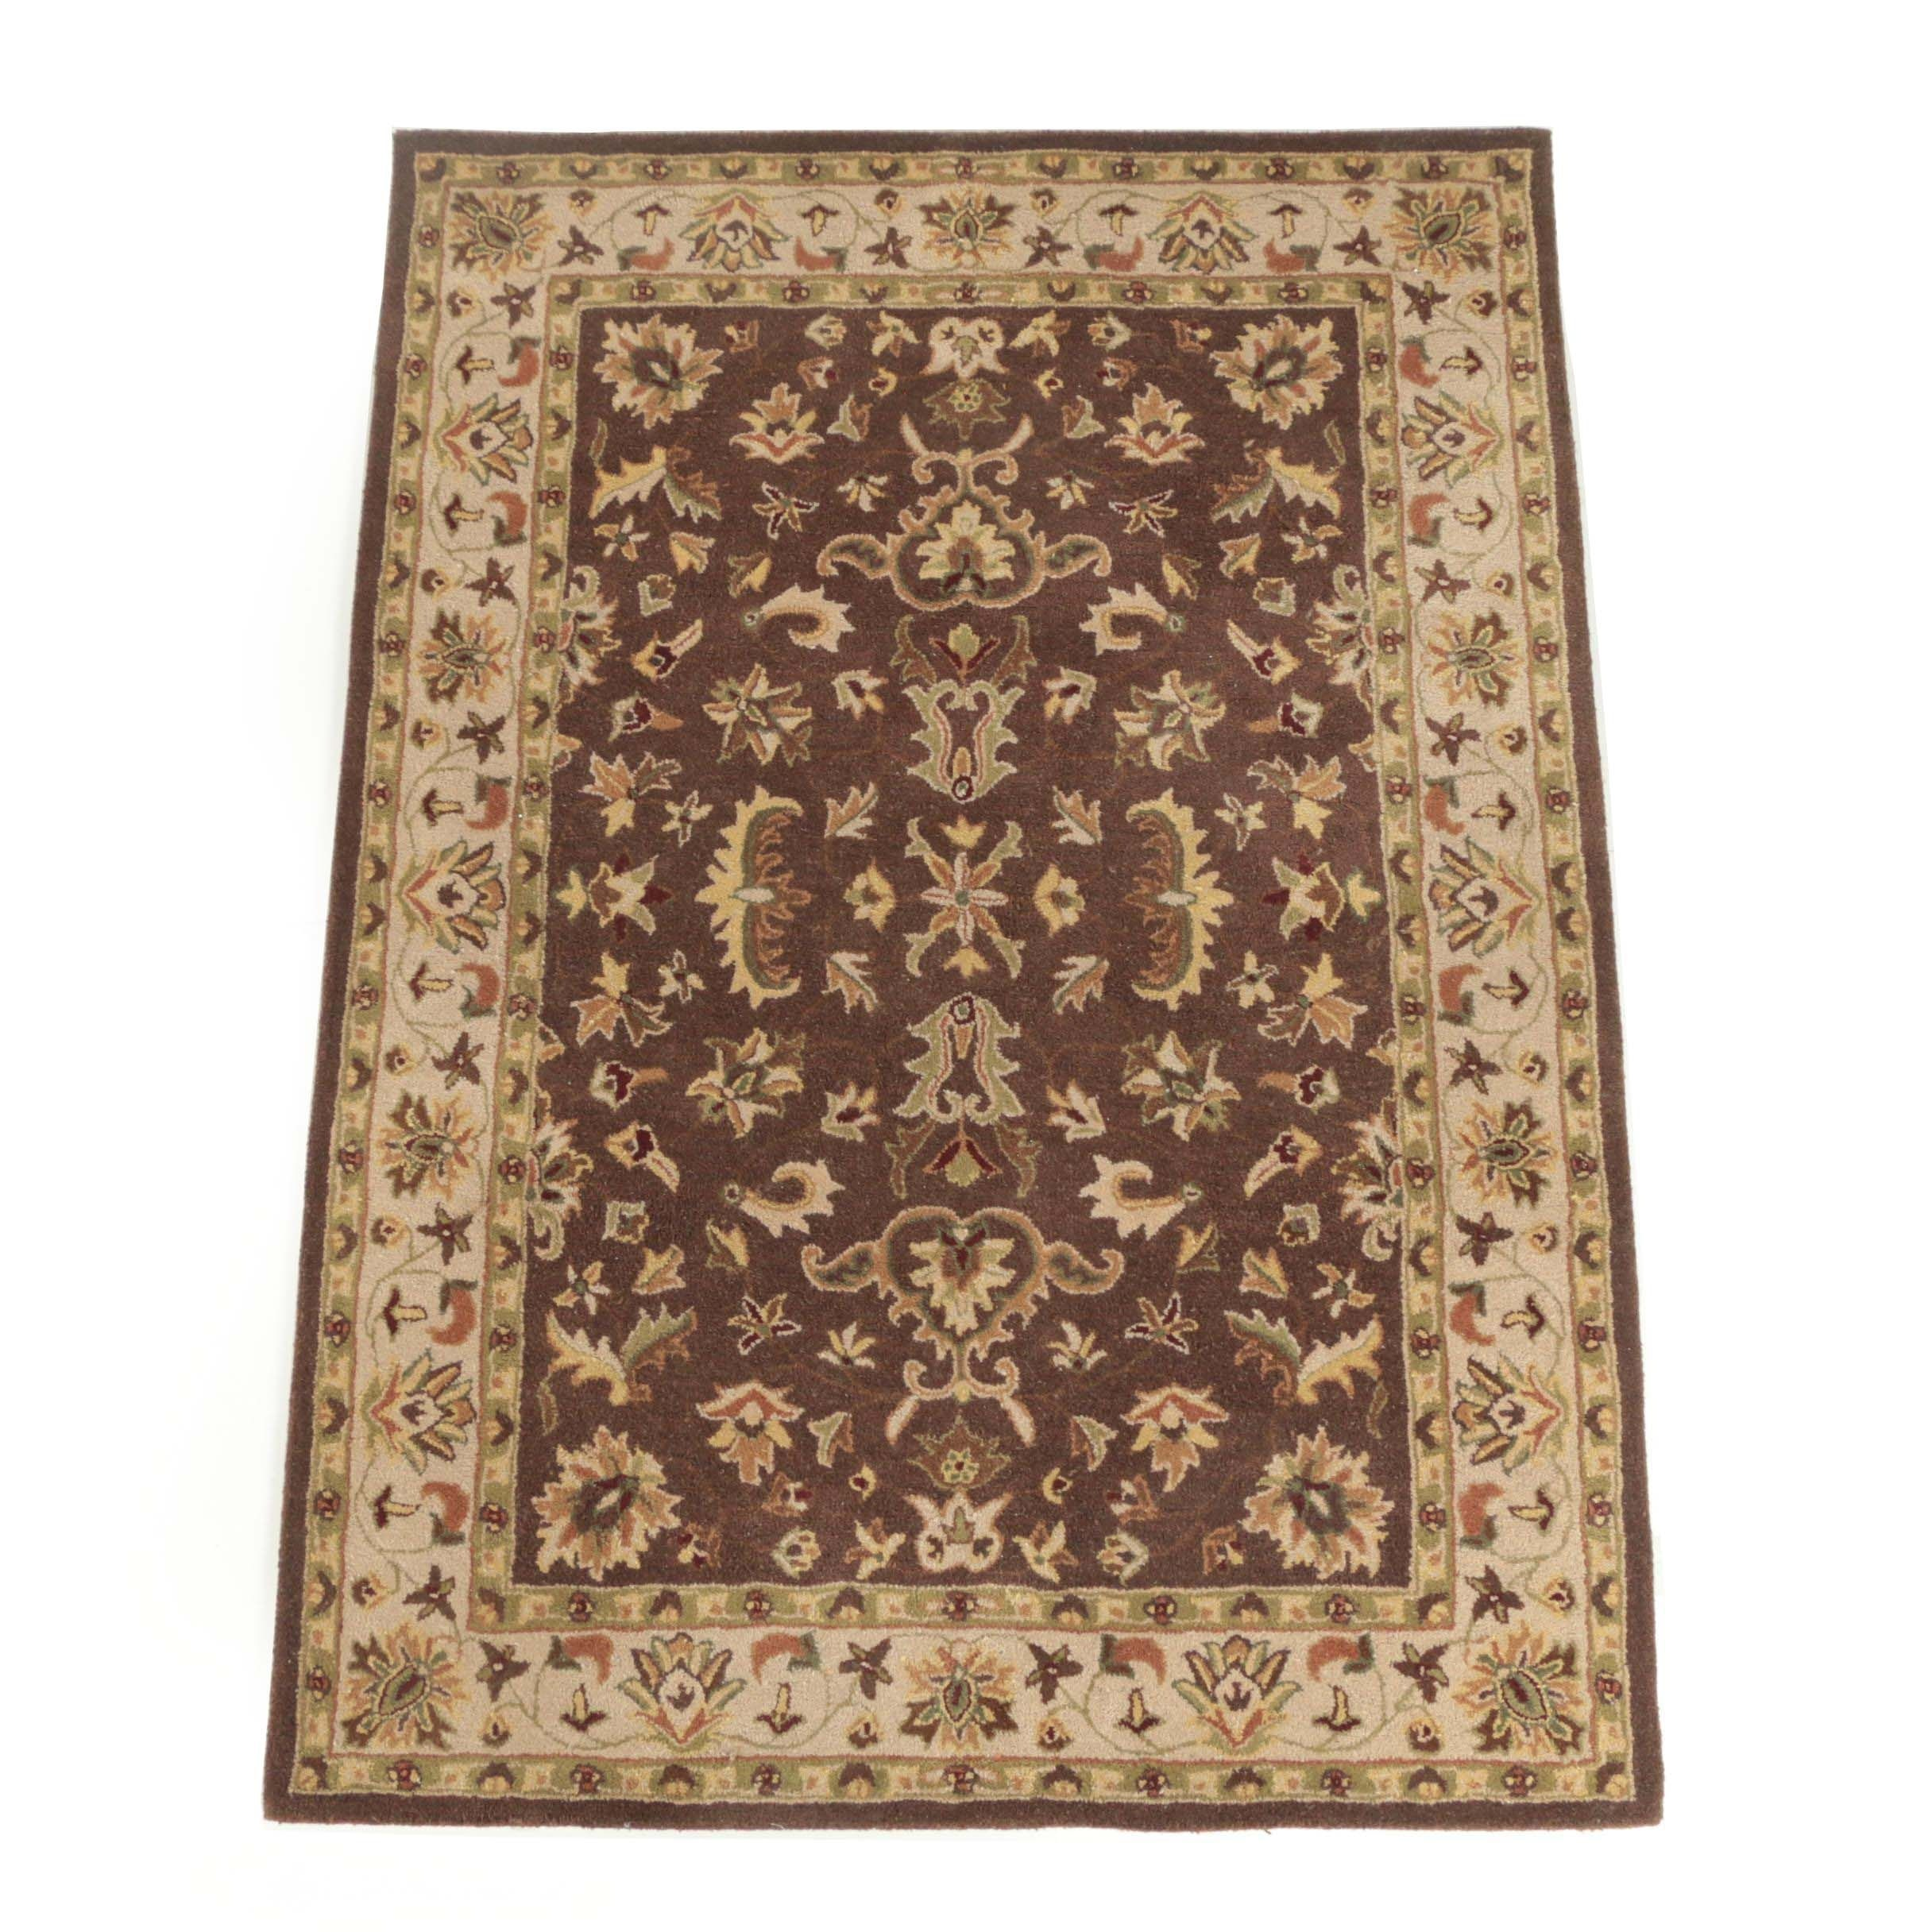 """Hand-Tufted Indian """"Agra"""" Wool Area Rug by Heritage Unlimited"""